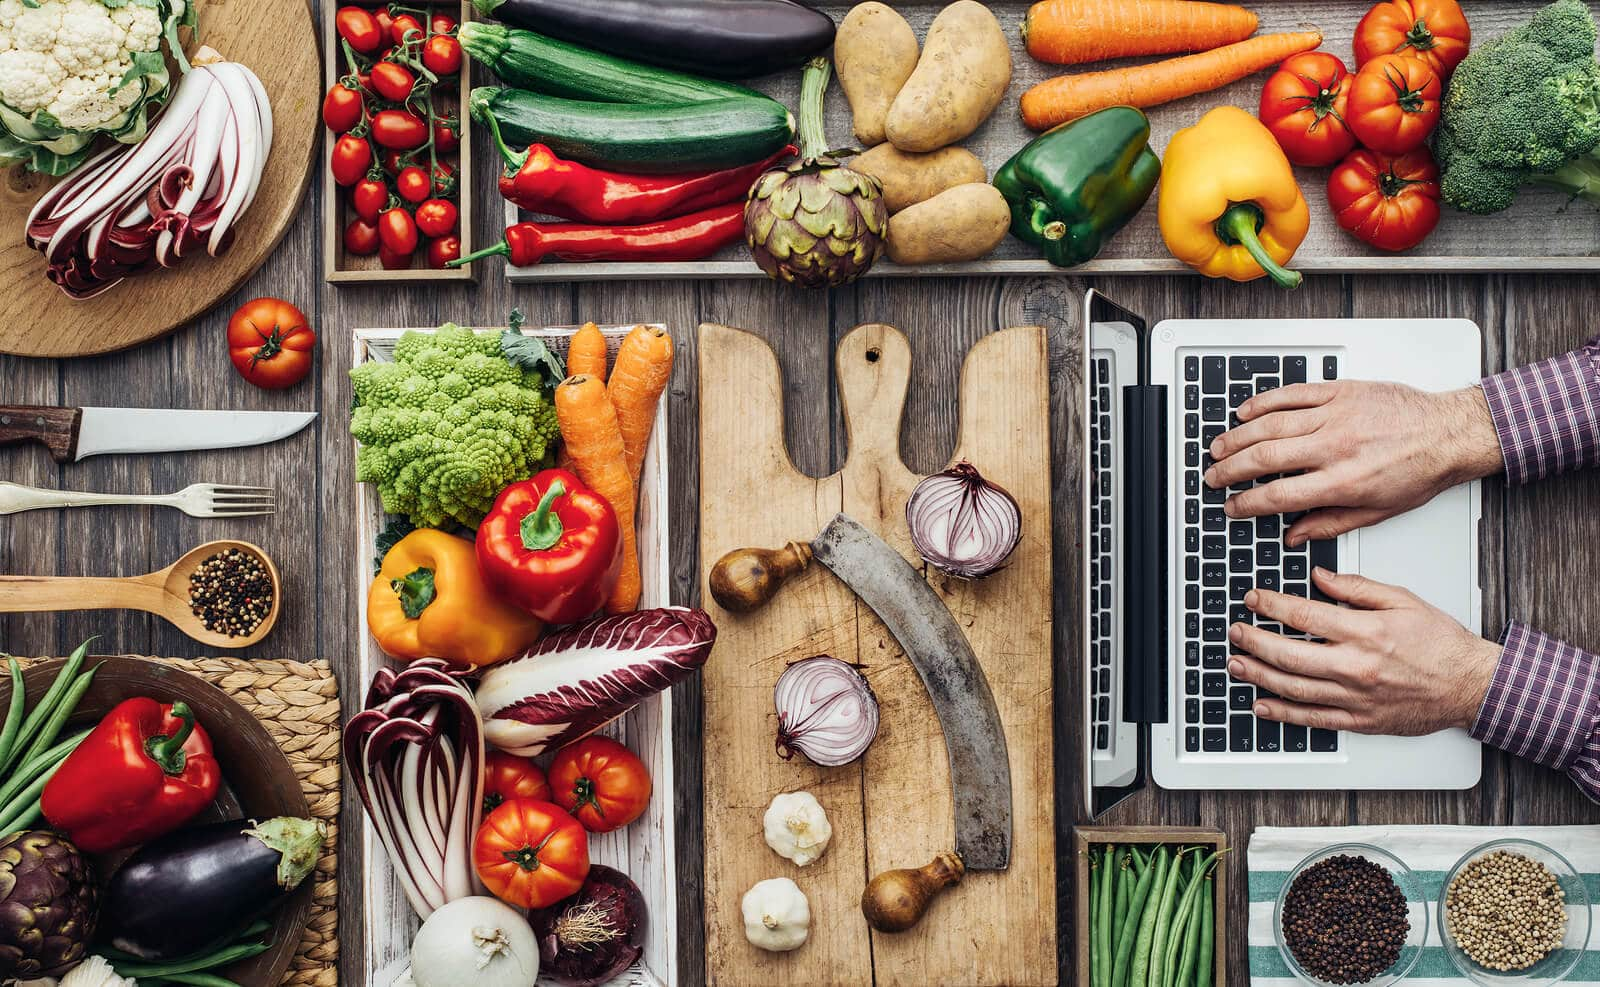 Freshly harvested vegetables cooking utensils and a laptop on a rustic kitchen worktop a man is searching recipes online